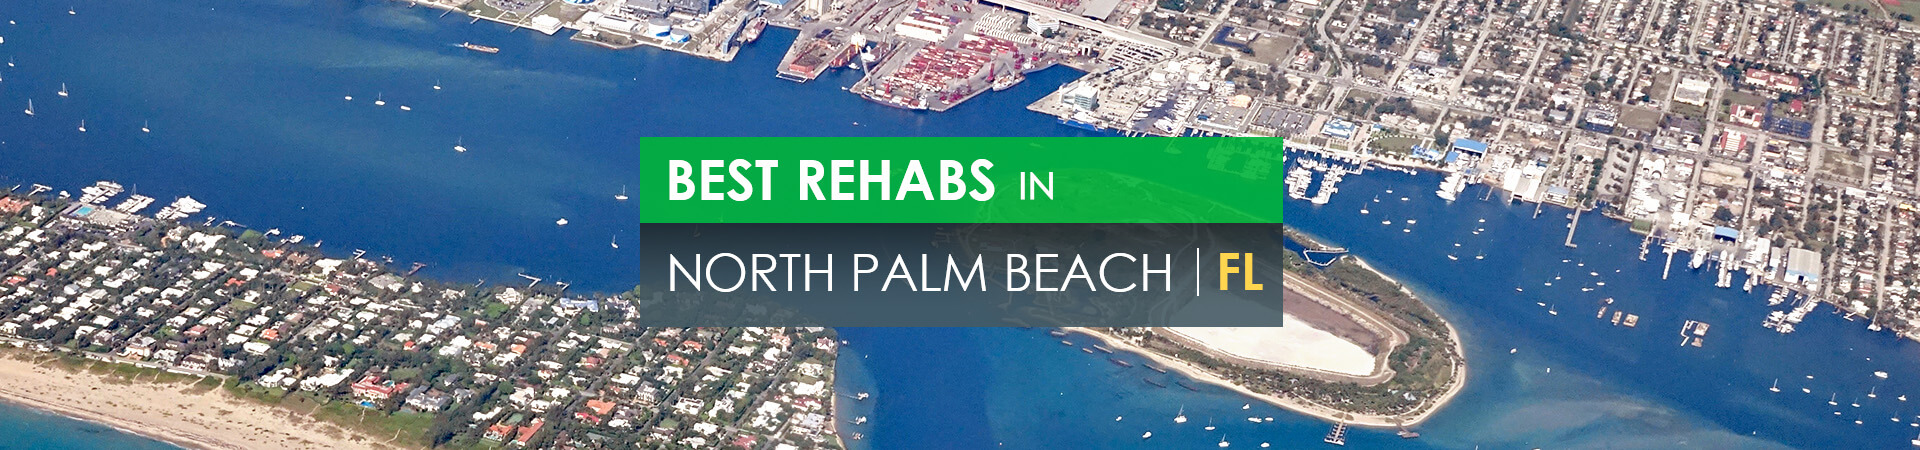 Best rehabs in North Palm Beach, FL